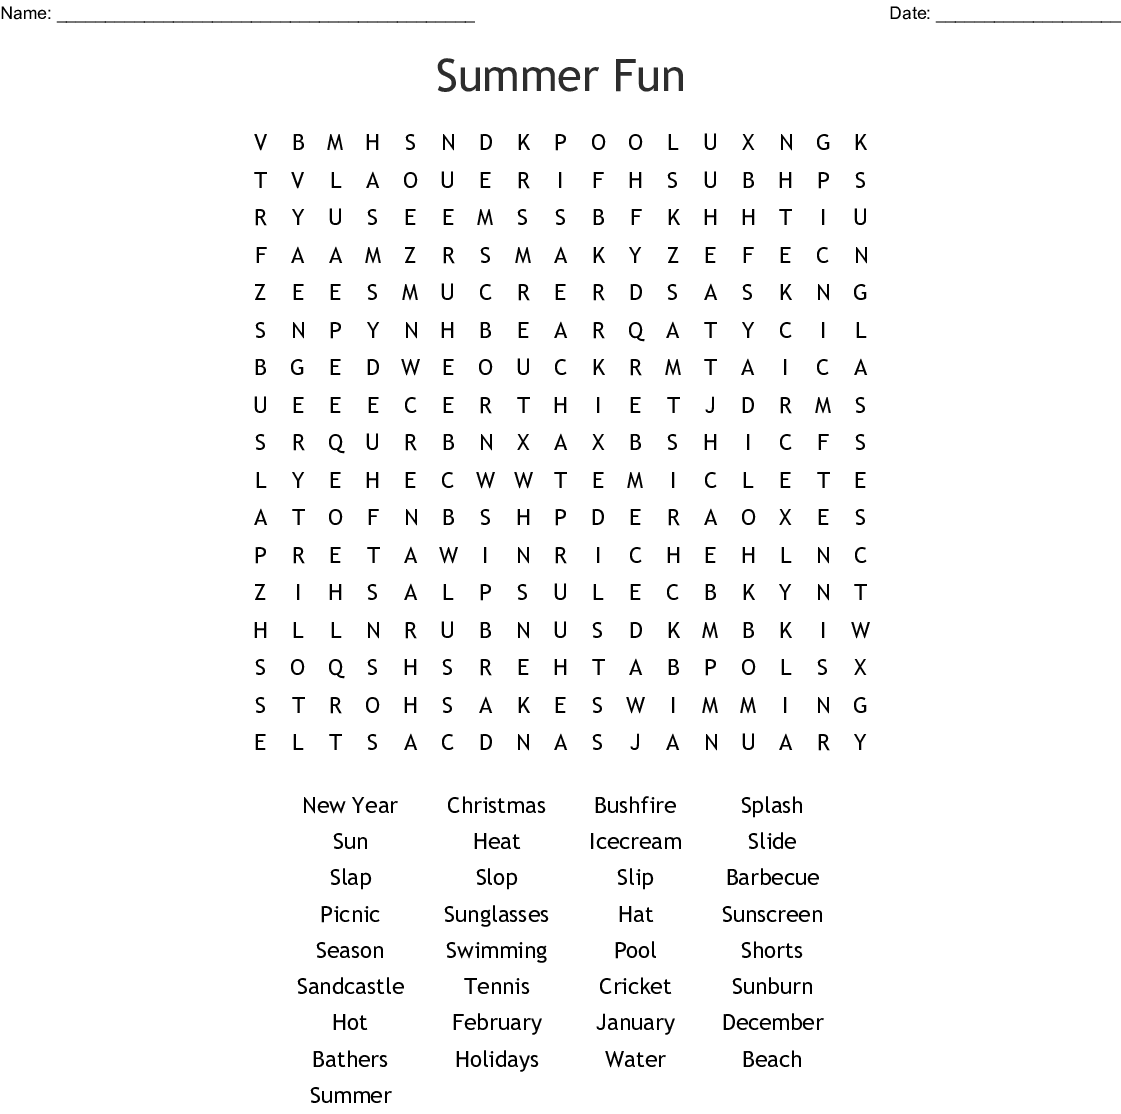 Summer Safety Word Search